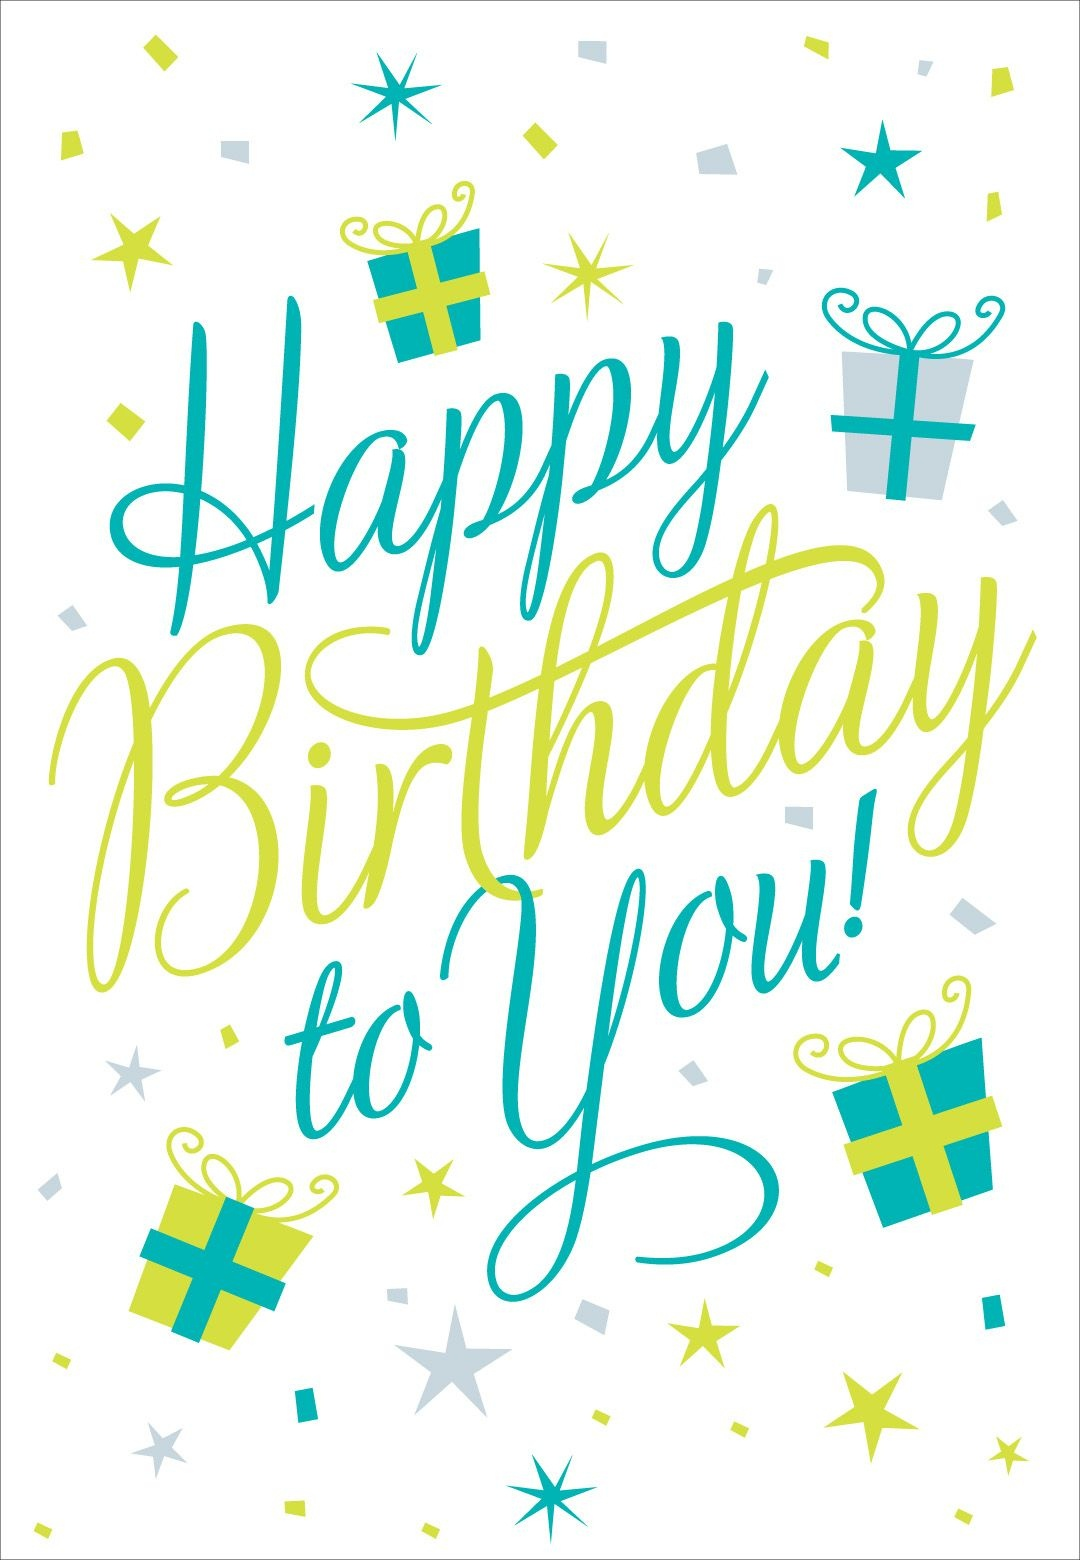 Happy Birthday | Greetings For All Occasions! | Frases De Feliz - Free Printable Greeting Cards For All Occasions